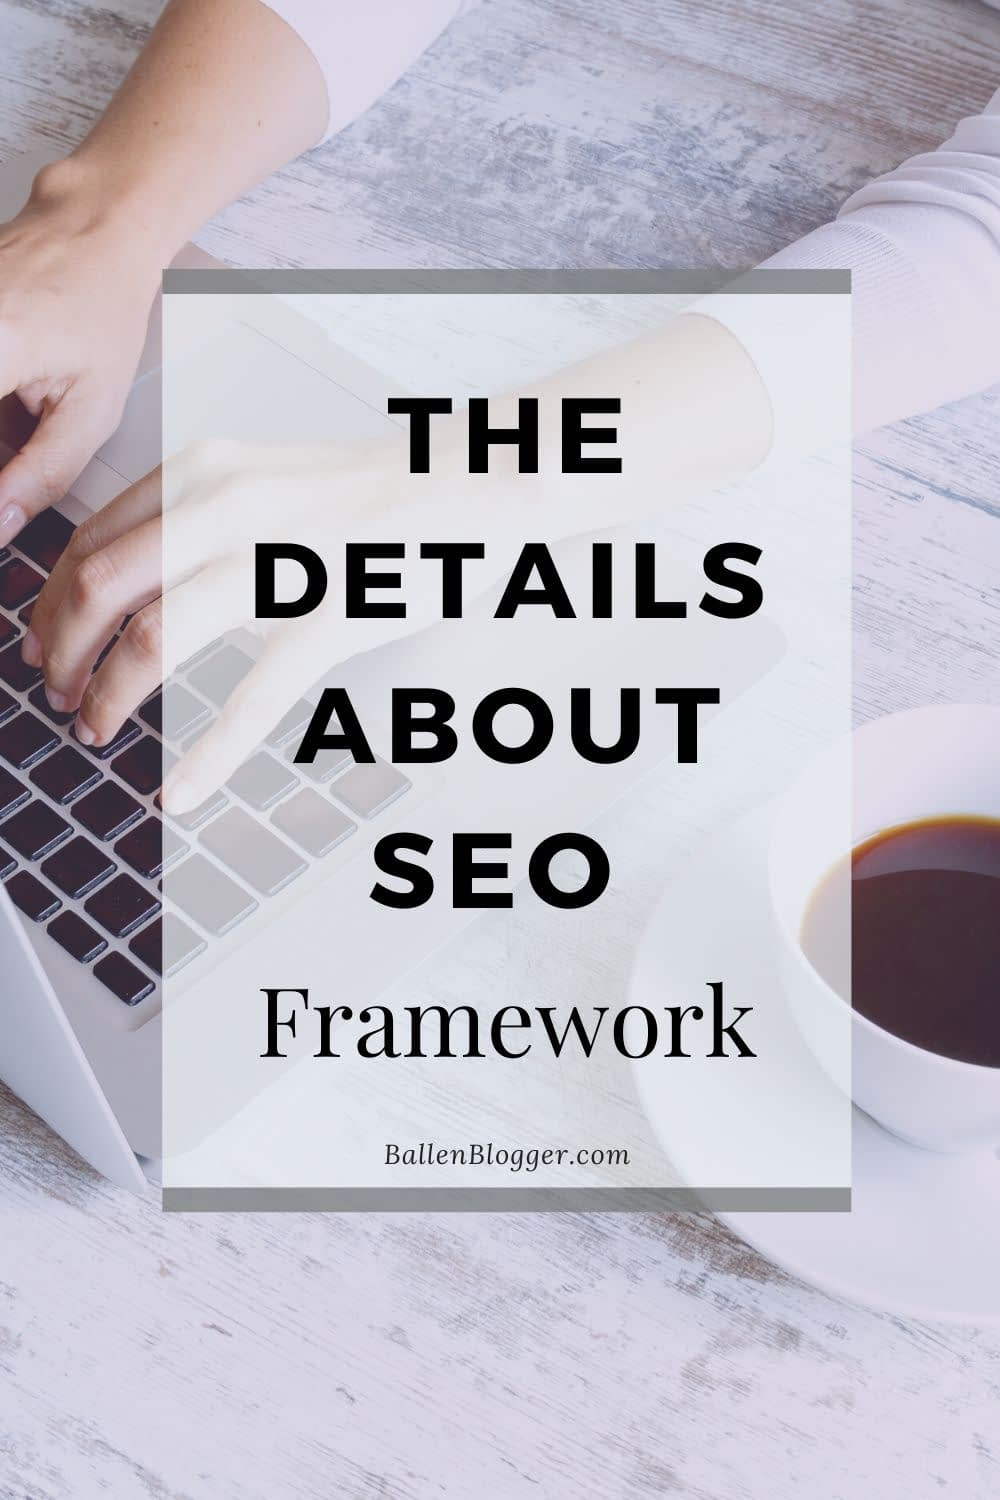 While The SEO Framework might not be as popular as some of the other options, it has grown quickly to become one of the most powerful SEO plugins out there.